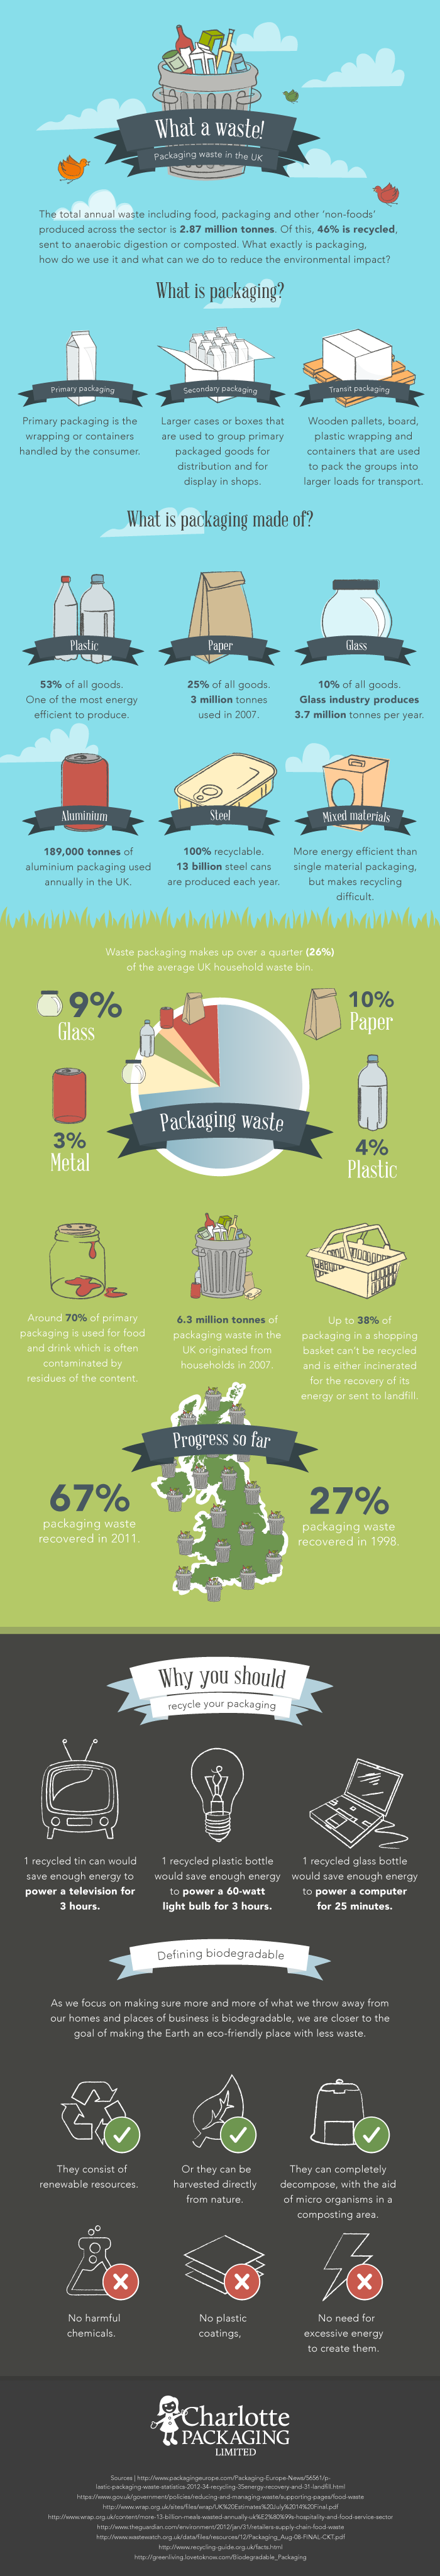 Packaging Waste in the UK